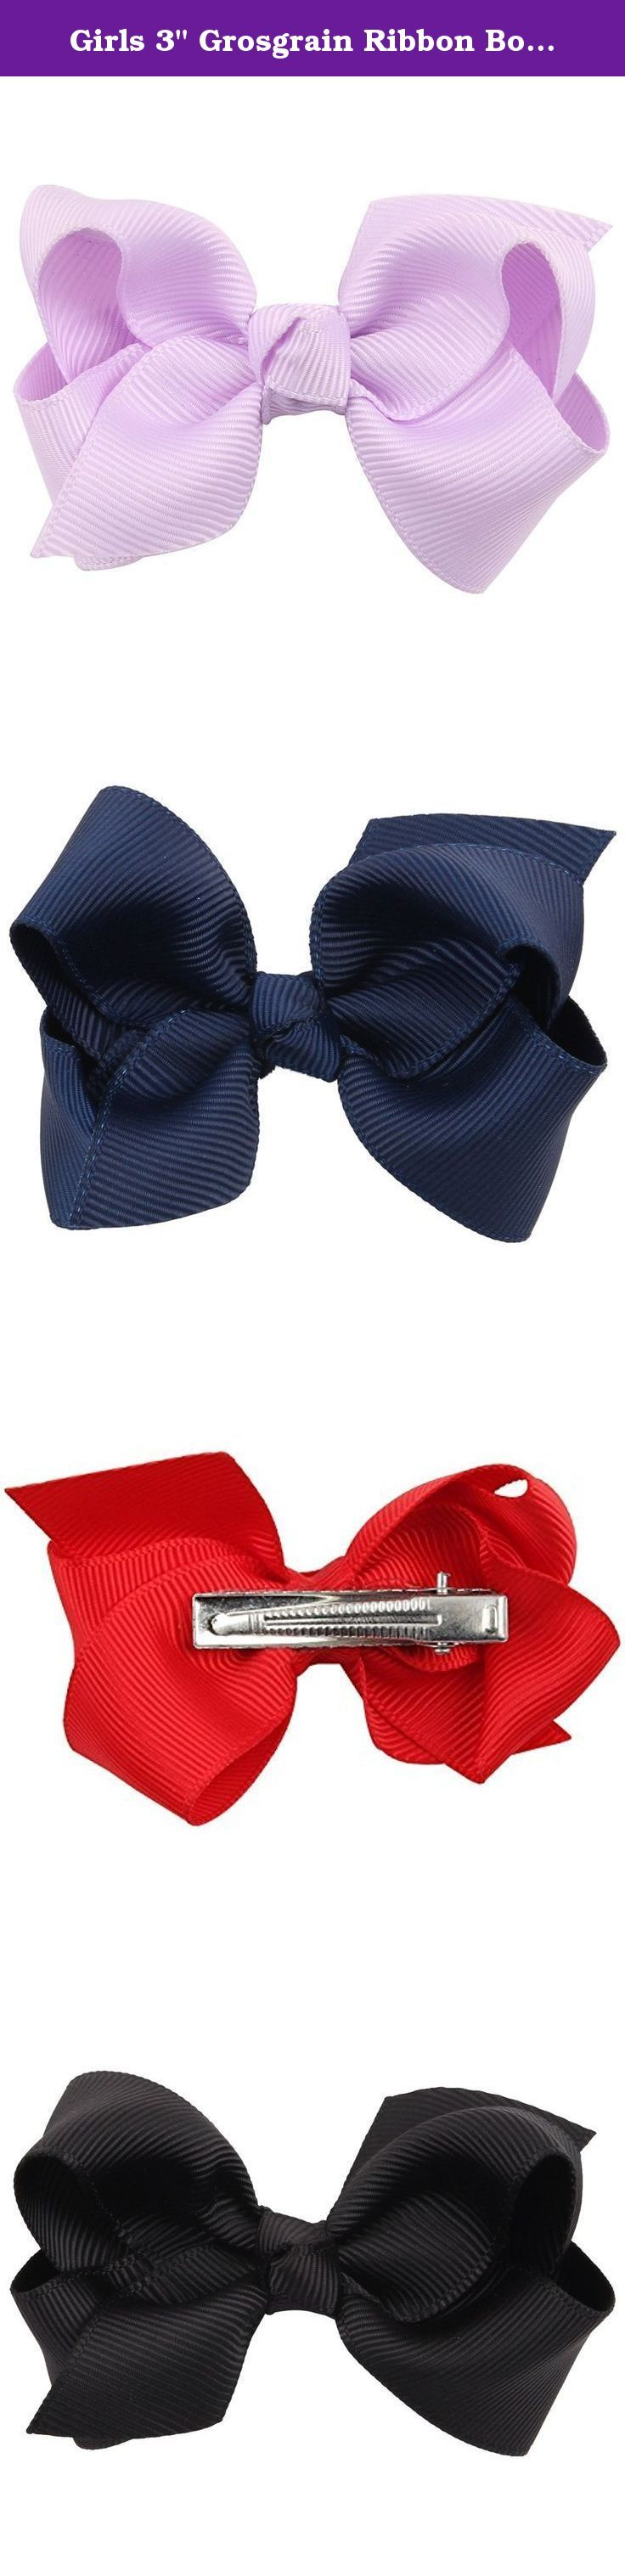 """Girls 3"""" Grosgrain Ribbon Boutique Hair Bows with Alligator Clip - Pack of 20. This pack comes with 20 beautiful solid colored bows, perfect for accenting any outfit! Colors included are: Lilac, Pink, Brown, Navy Blue, Fuchsia, Ivory, Green, White, Beige, Red, Orange, Gray, Yellow, Black, Baby Blue, Purple, Light Blue, Blue, Light Green, Light Pink Because they are handmade, these bows may vary slightly in size. WARNING: CHOKING HAZARD - Small parts, not suitable for children under 3 yrs...."""